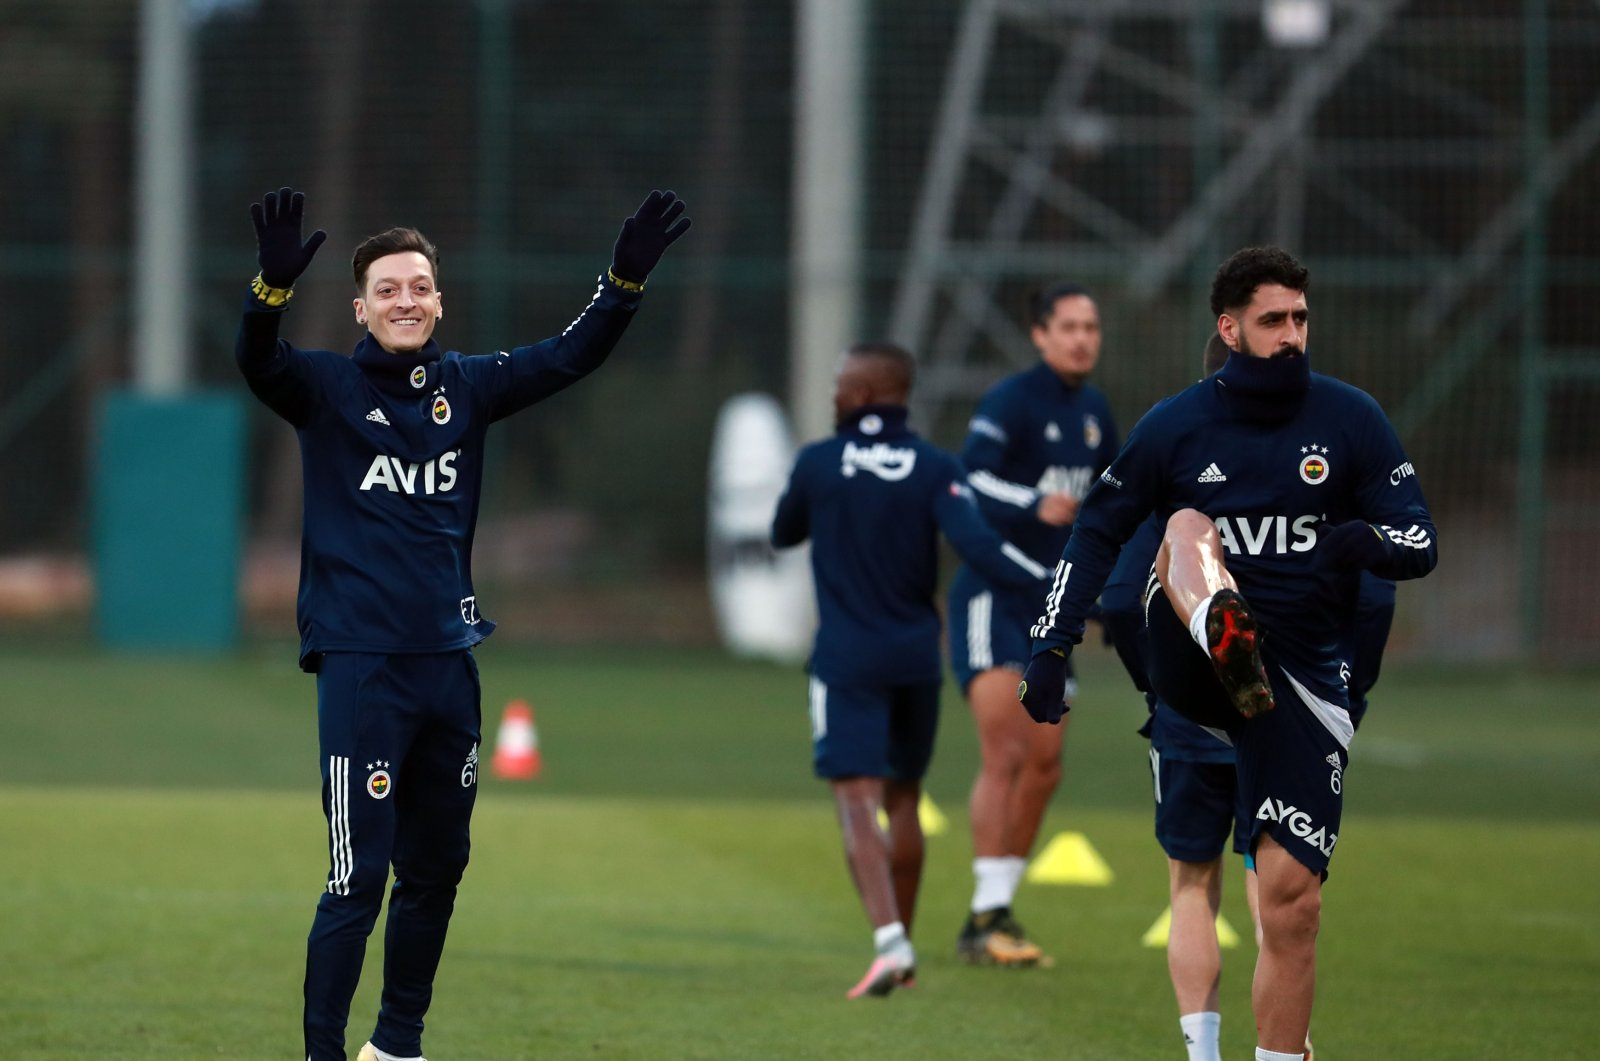 Fenerbahçe's new transfer, German midfielder Mesut Özil, takes part in his first training session with the team in Istanbul, on Jan. 24, 2021. (DHA Photo)